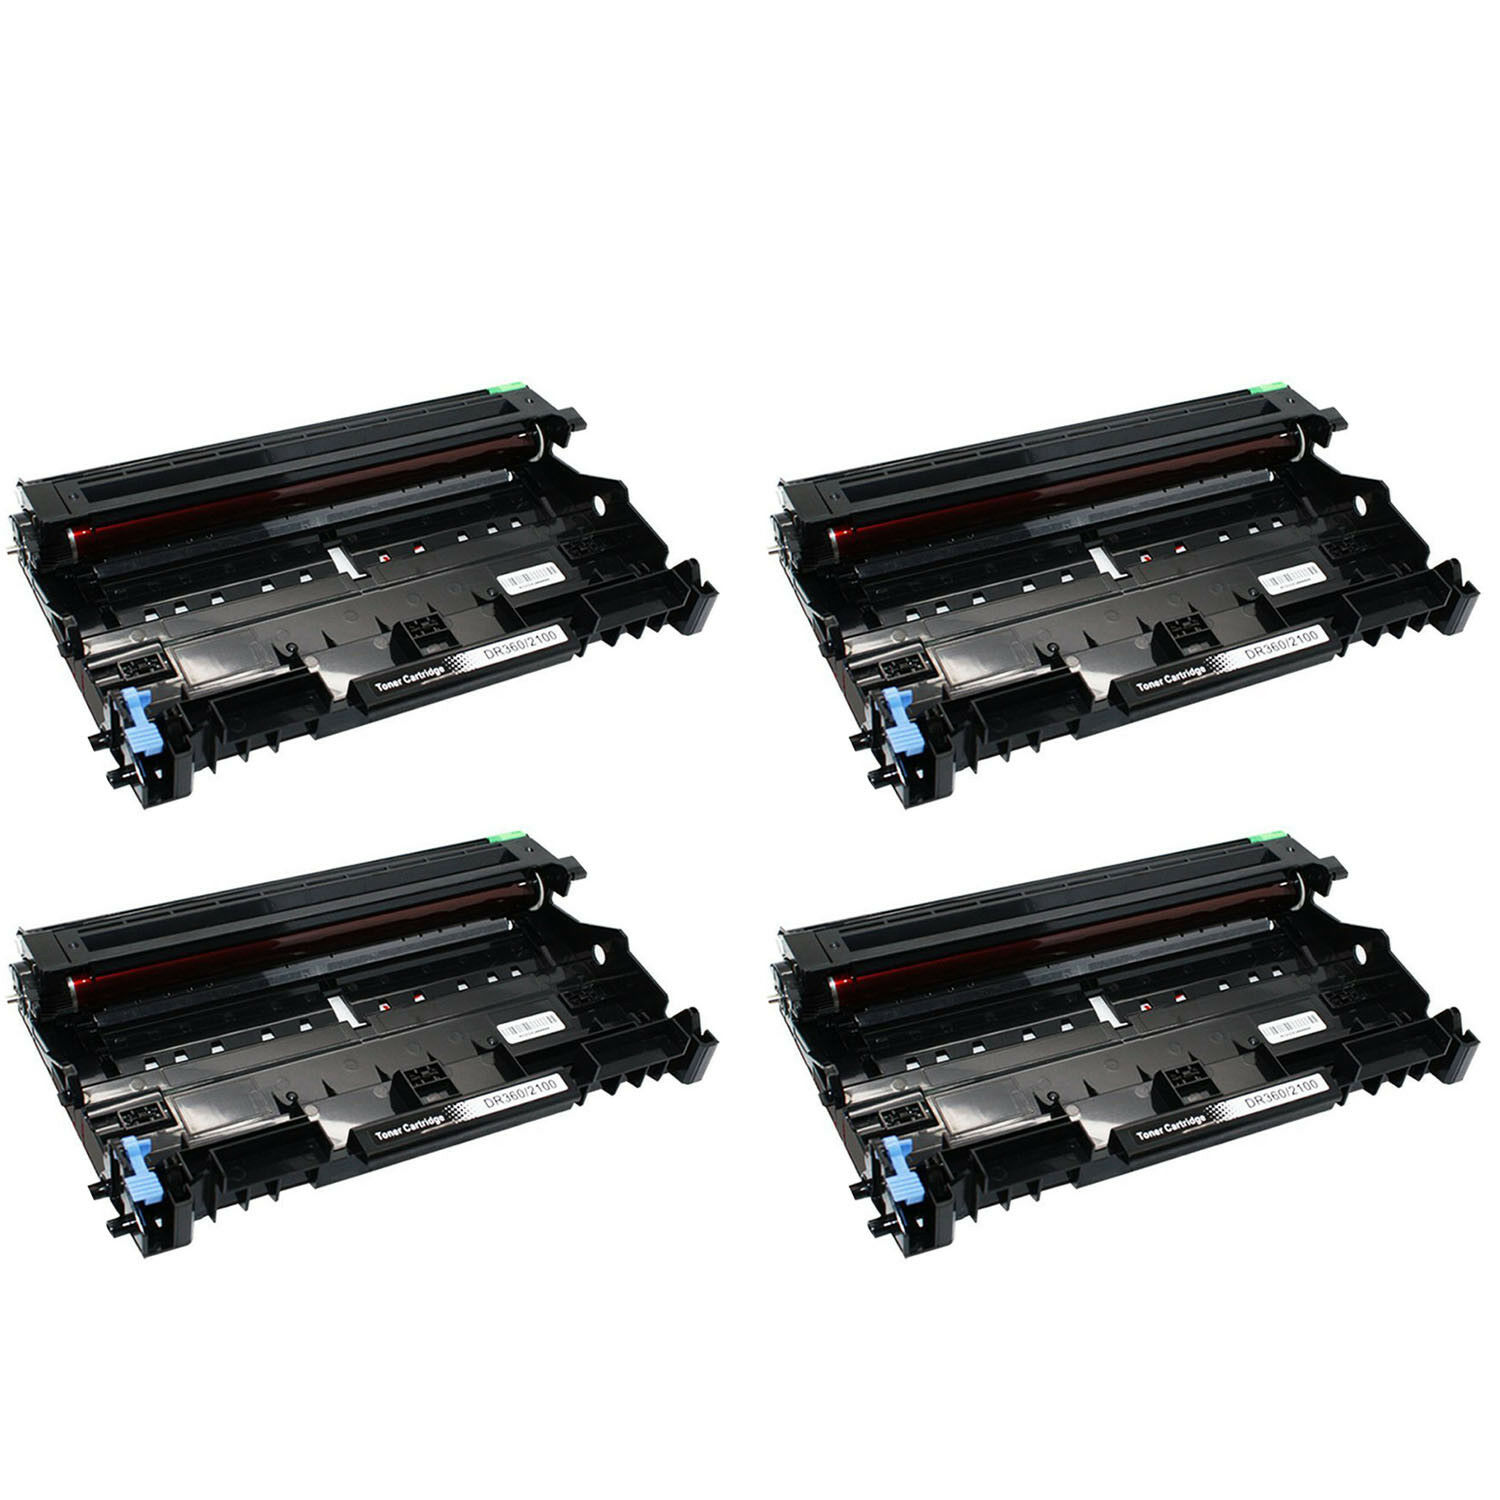 2x TONER COMPATIBILE PER BROTHER mfc-7320 dcp-7030 hl2140 mfc-7440n hl2150n 95